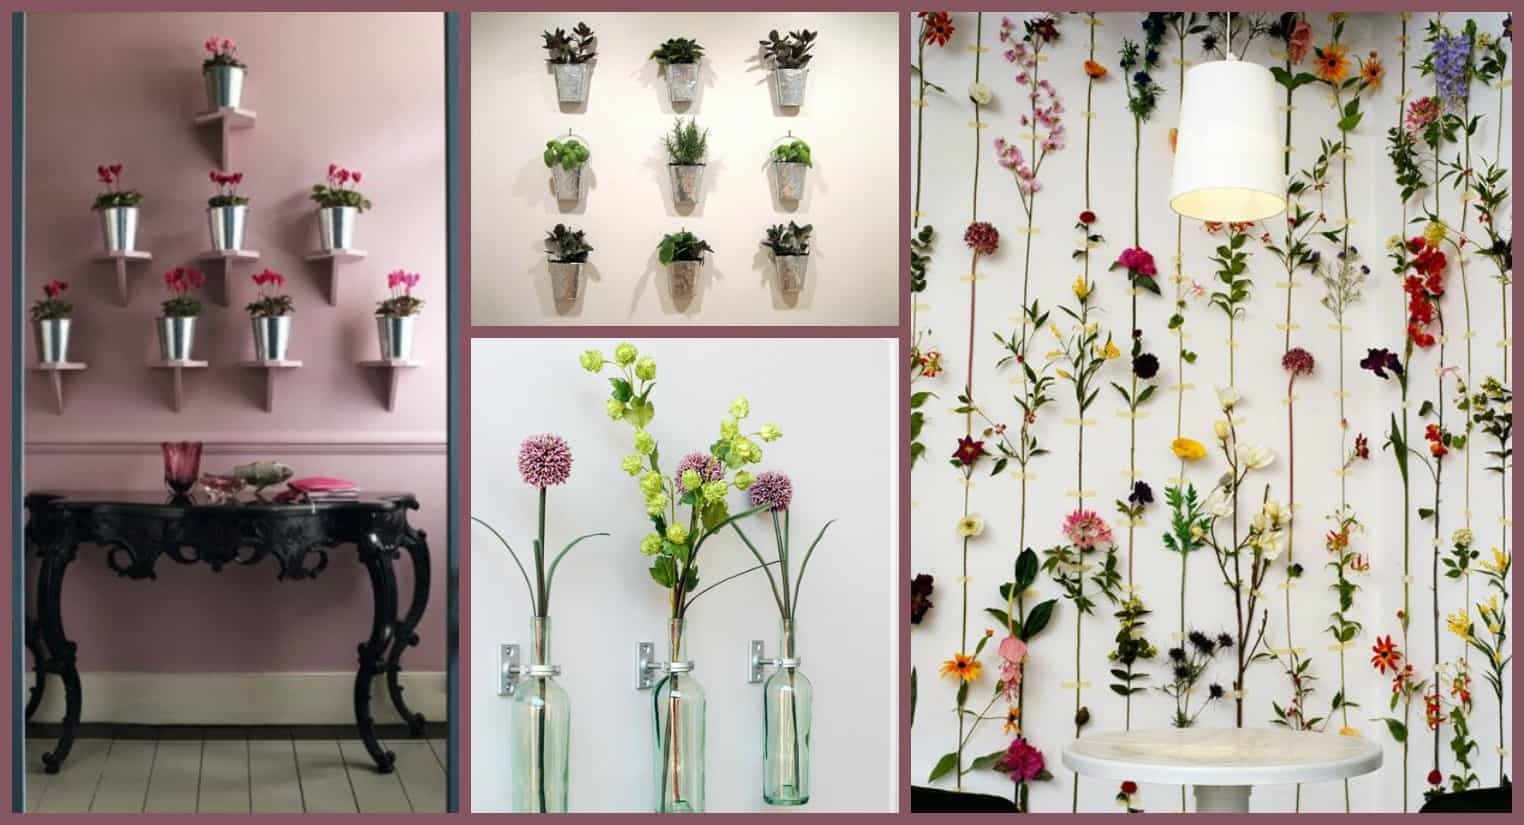 Diy 10 idee su come decorare una parete di casa for Come decorare una casa vittoriana